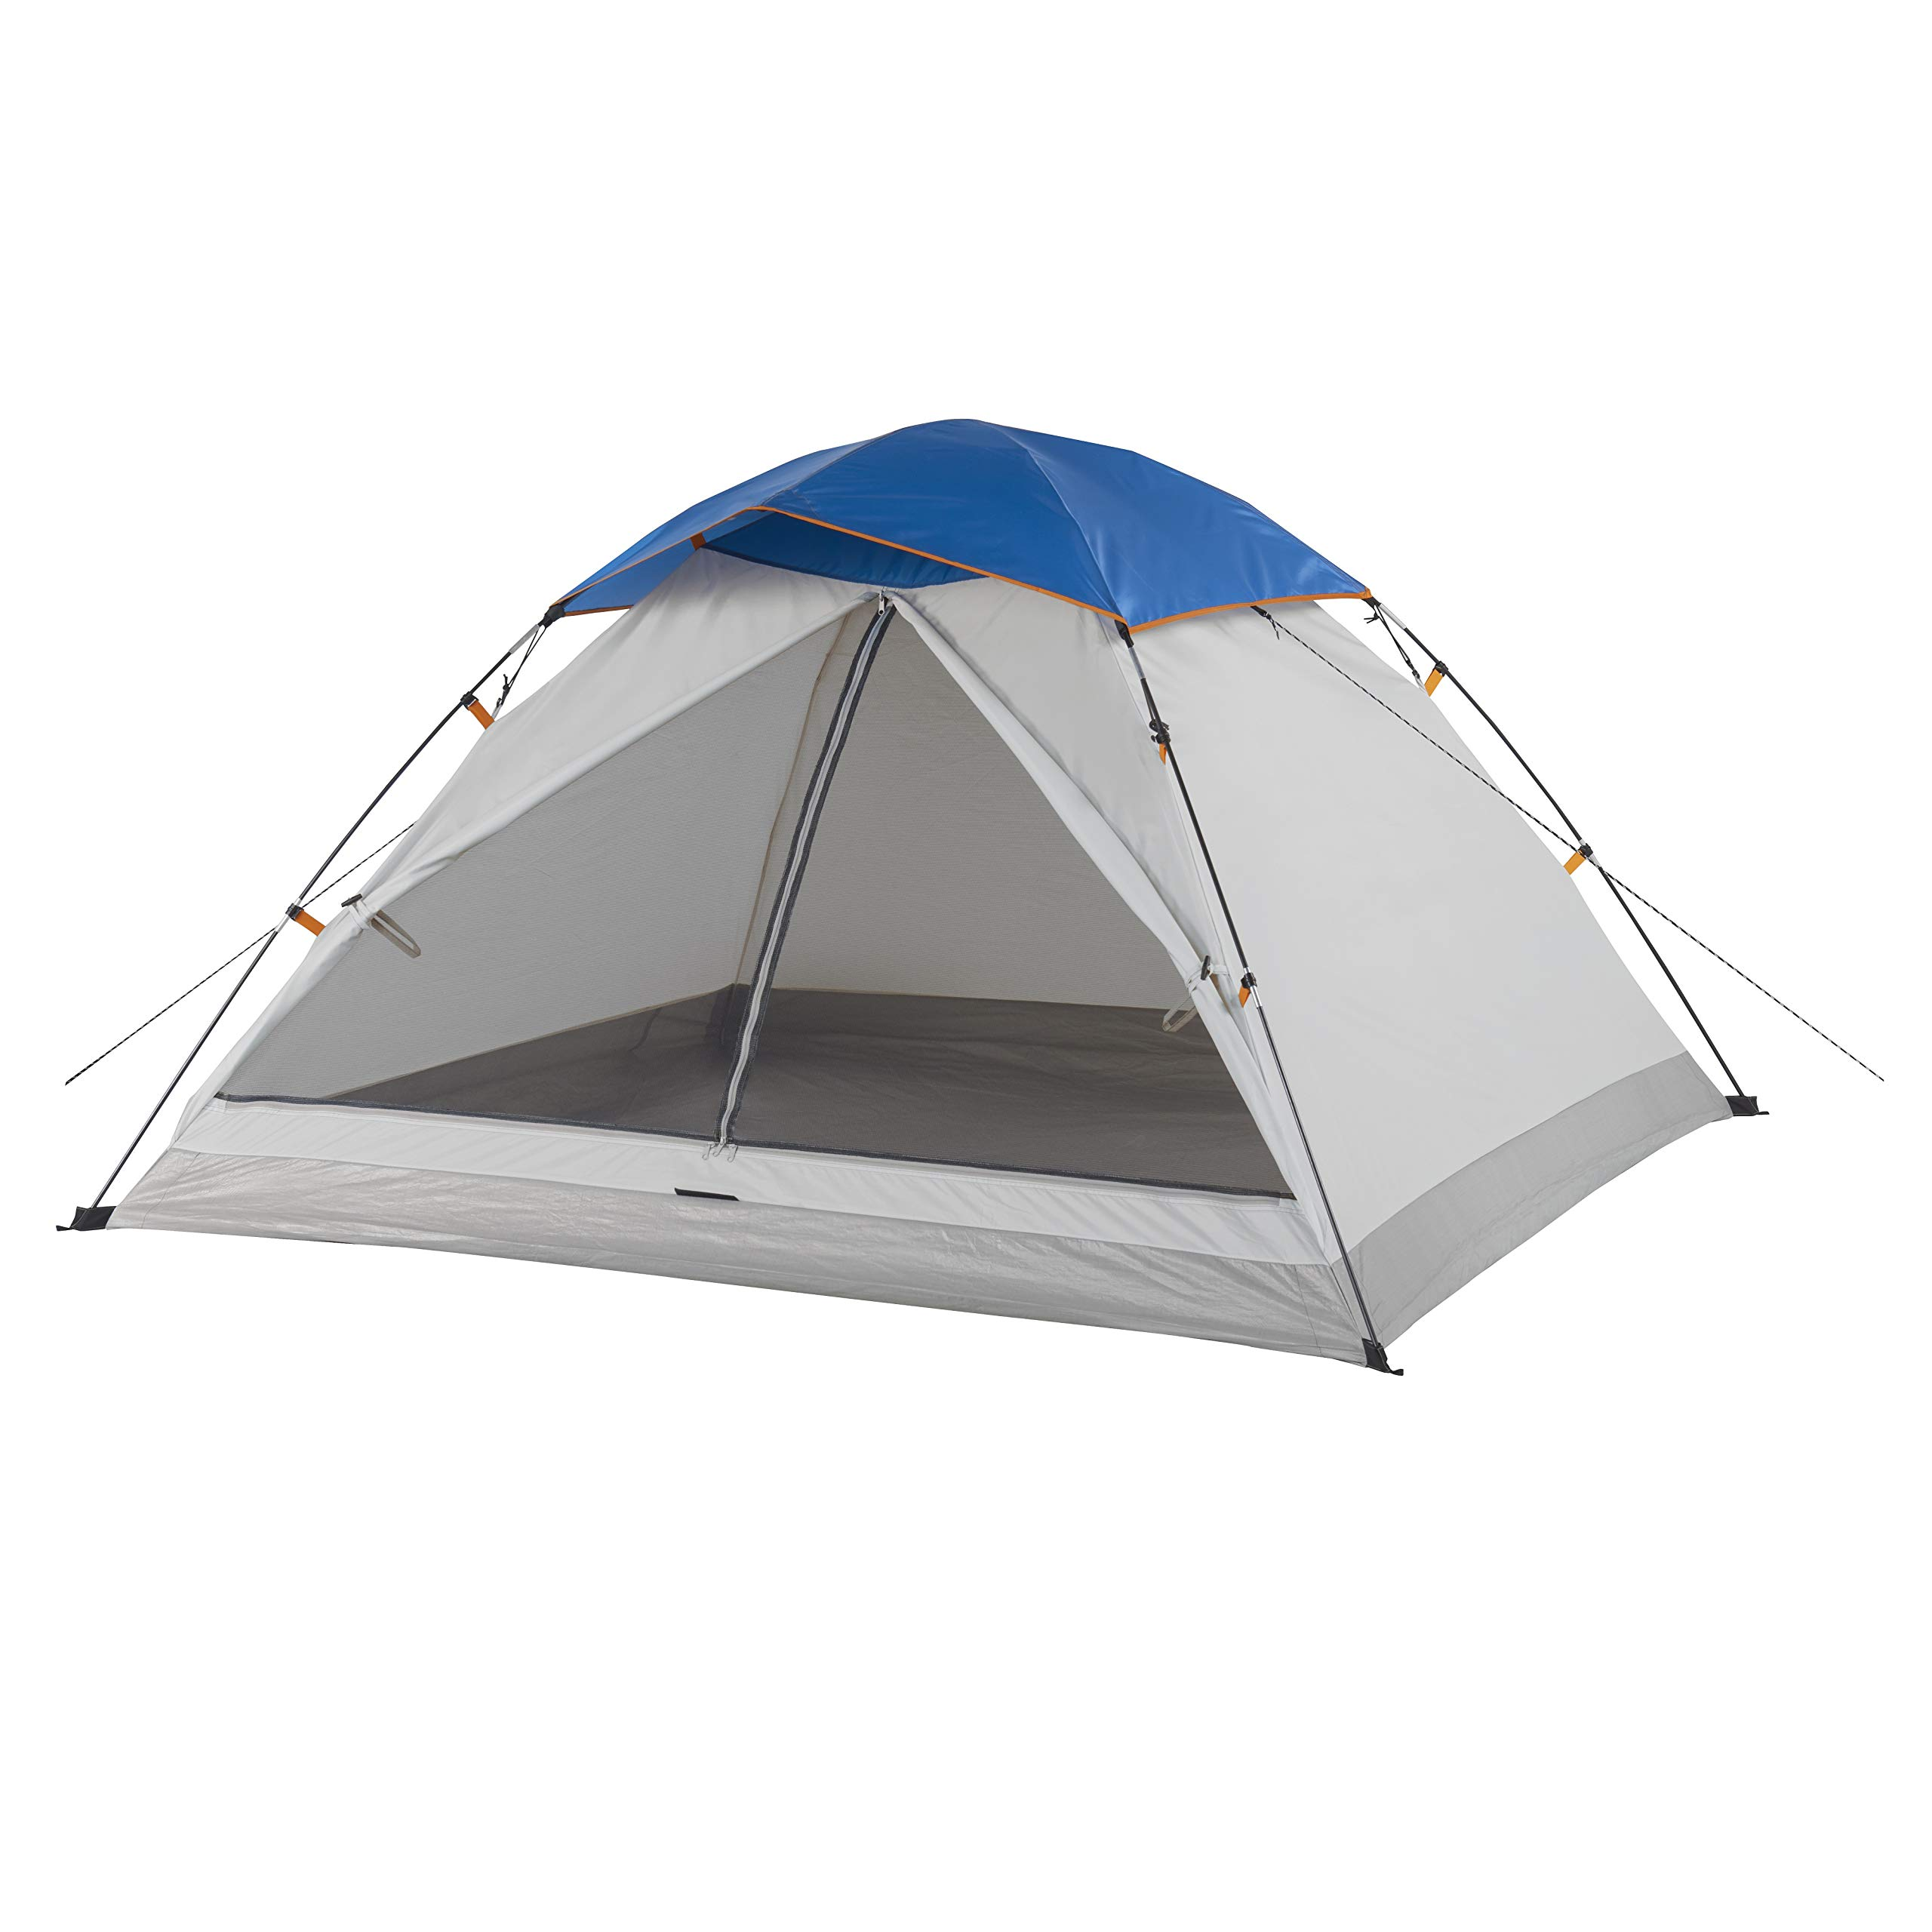 Suisse Sport Dome Tent - 3 Person by Suisse Sport